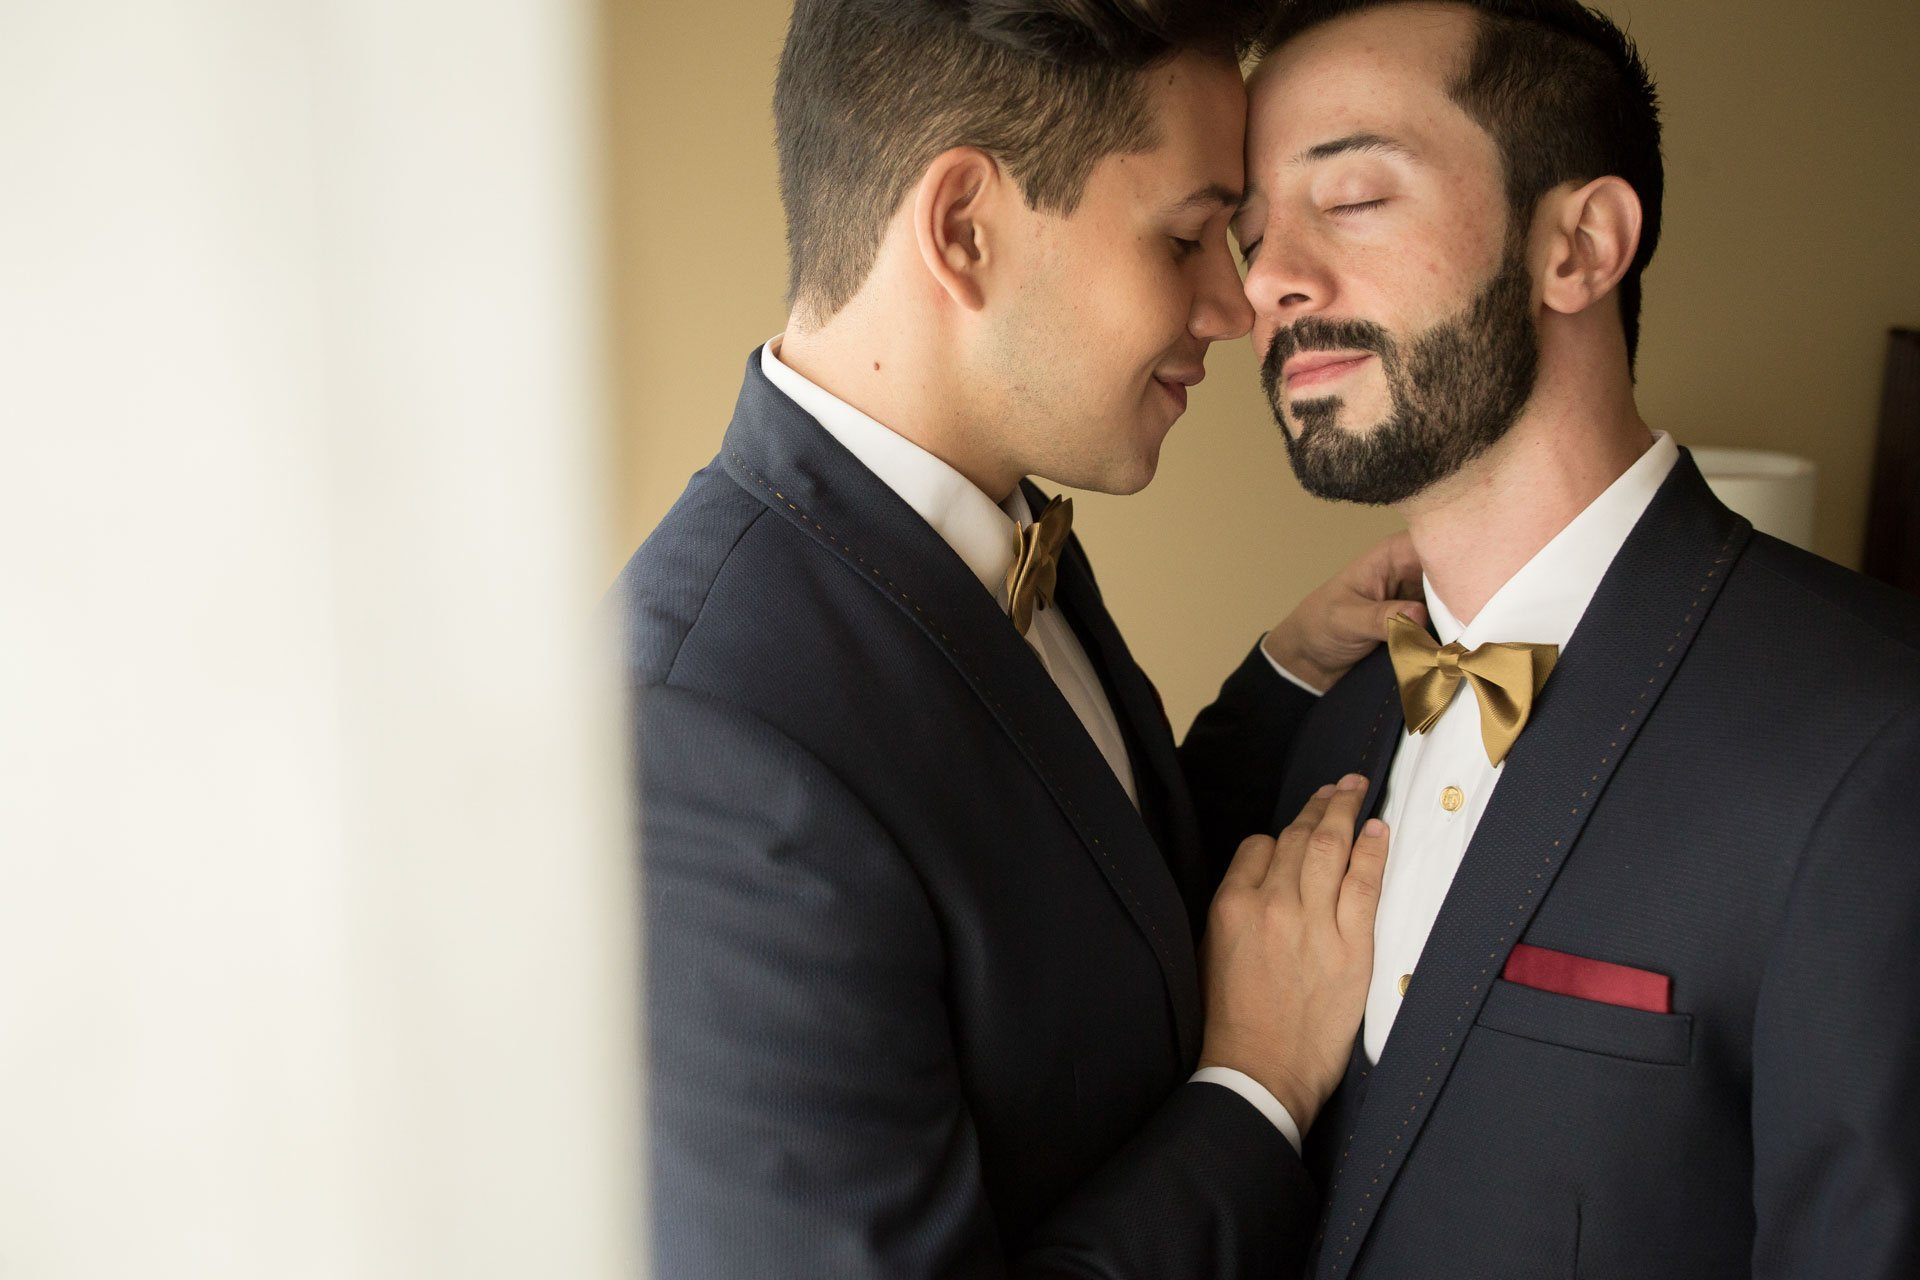 Married Colombian gay couple Jose and Camilo @ourdailylivesg